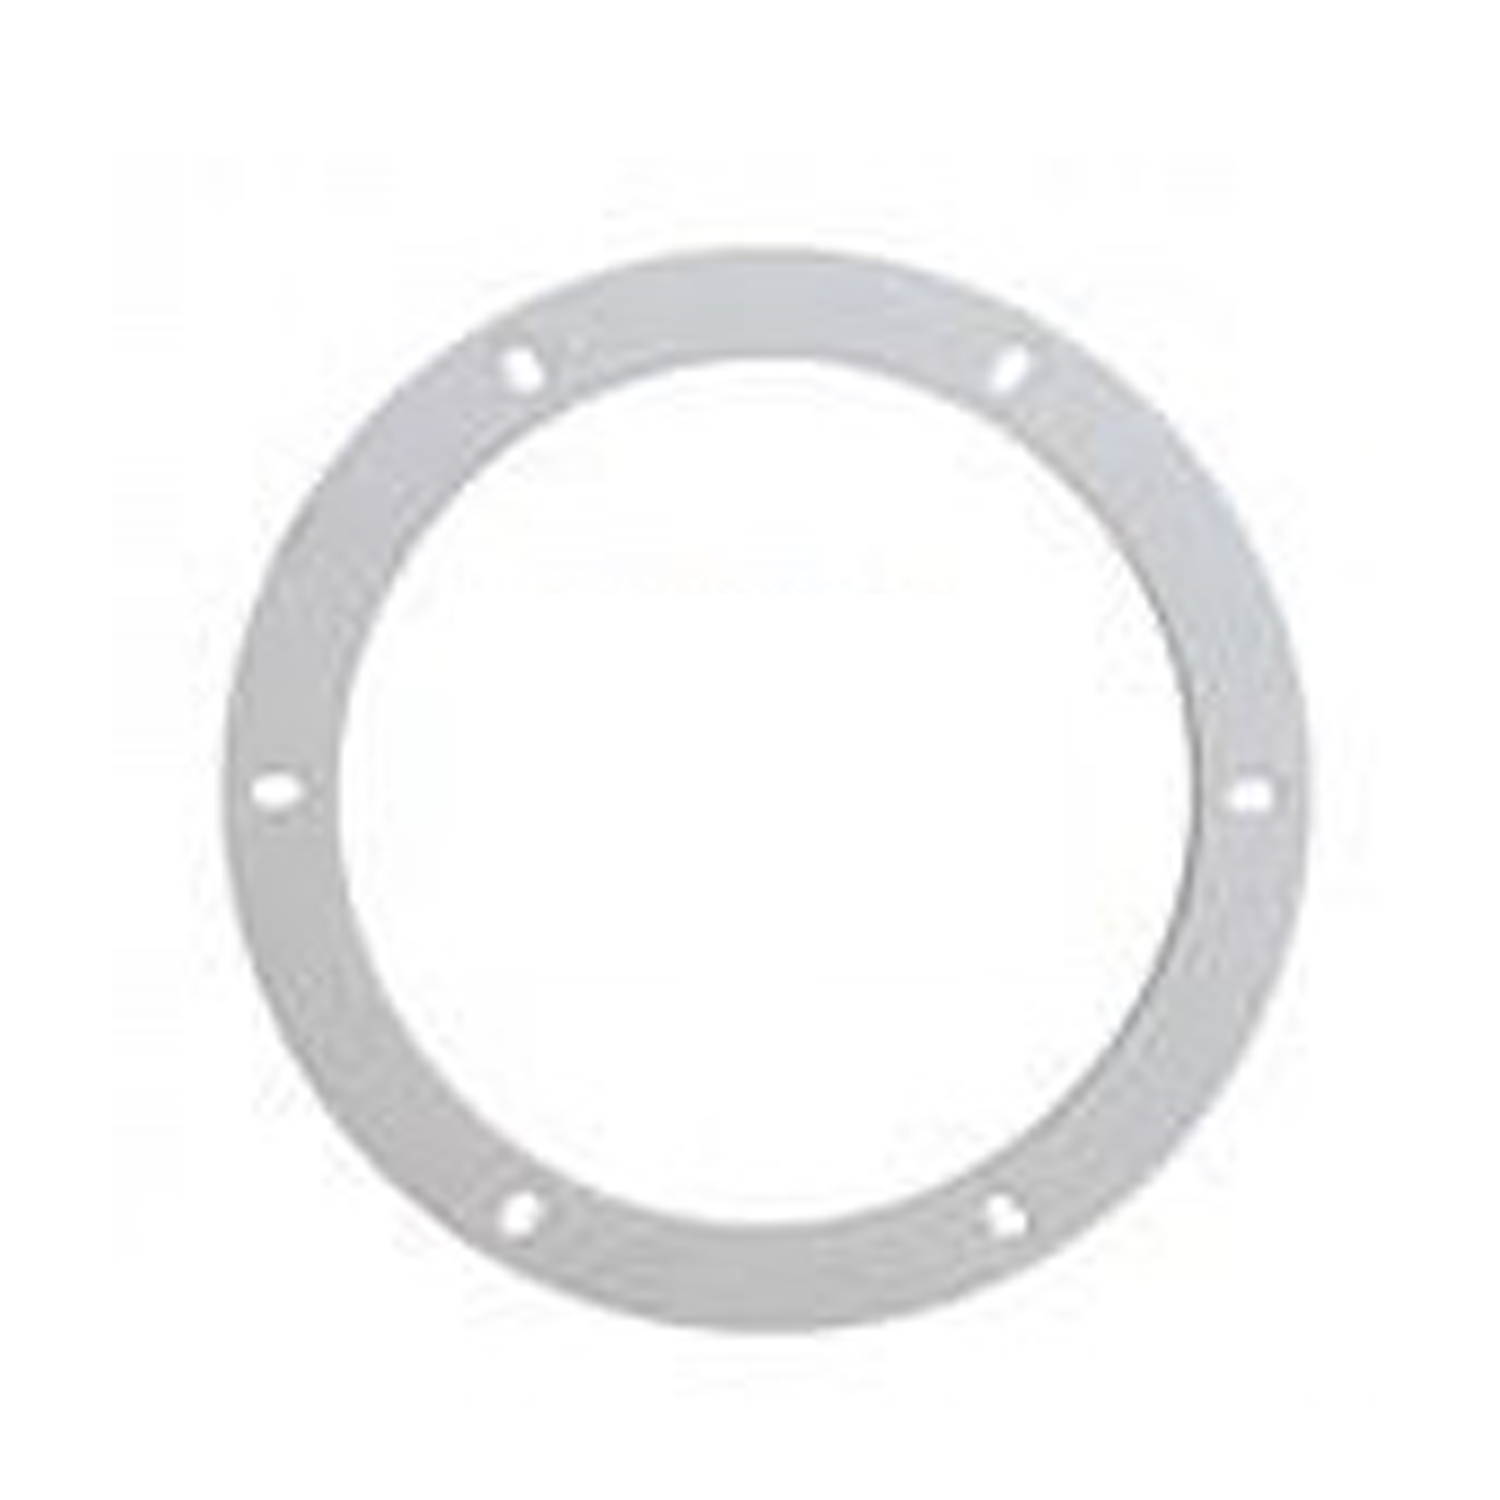 "Enviro Round Combustion Blower Housing Gasket 6"" Round"